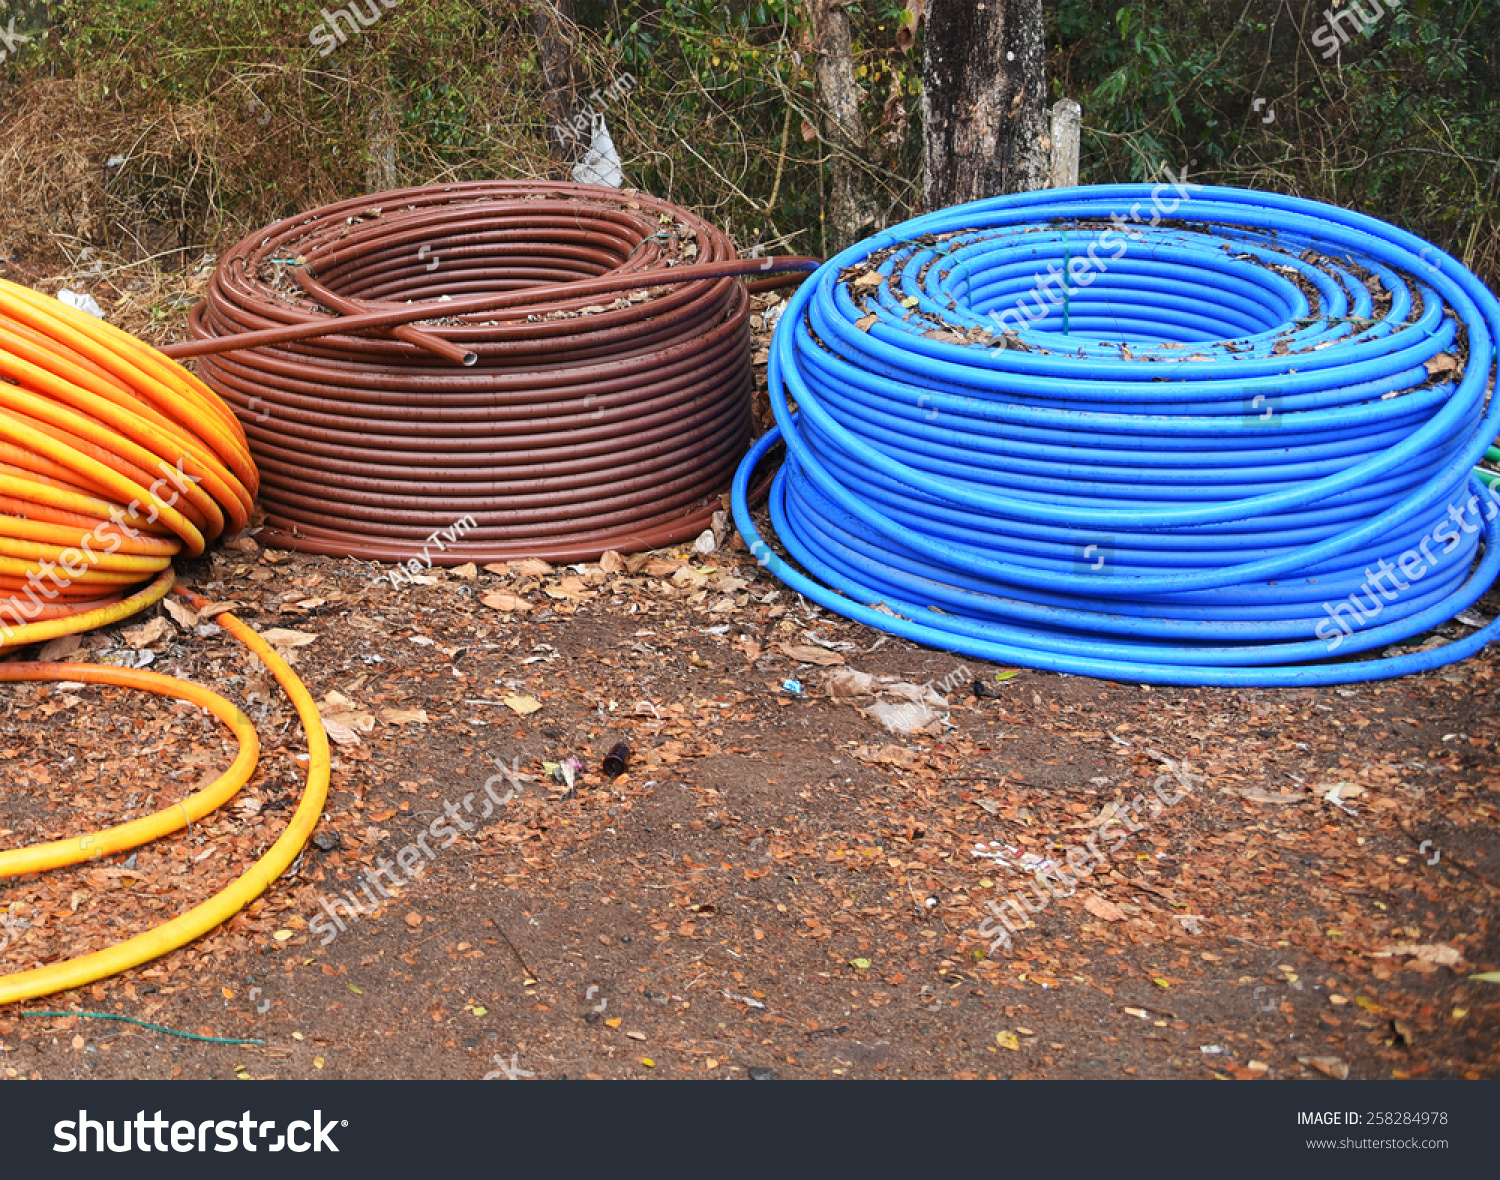 3 G Scam Rolls Underground Telephone Cable Stock Photo (Royalty Free ...